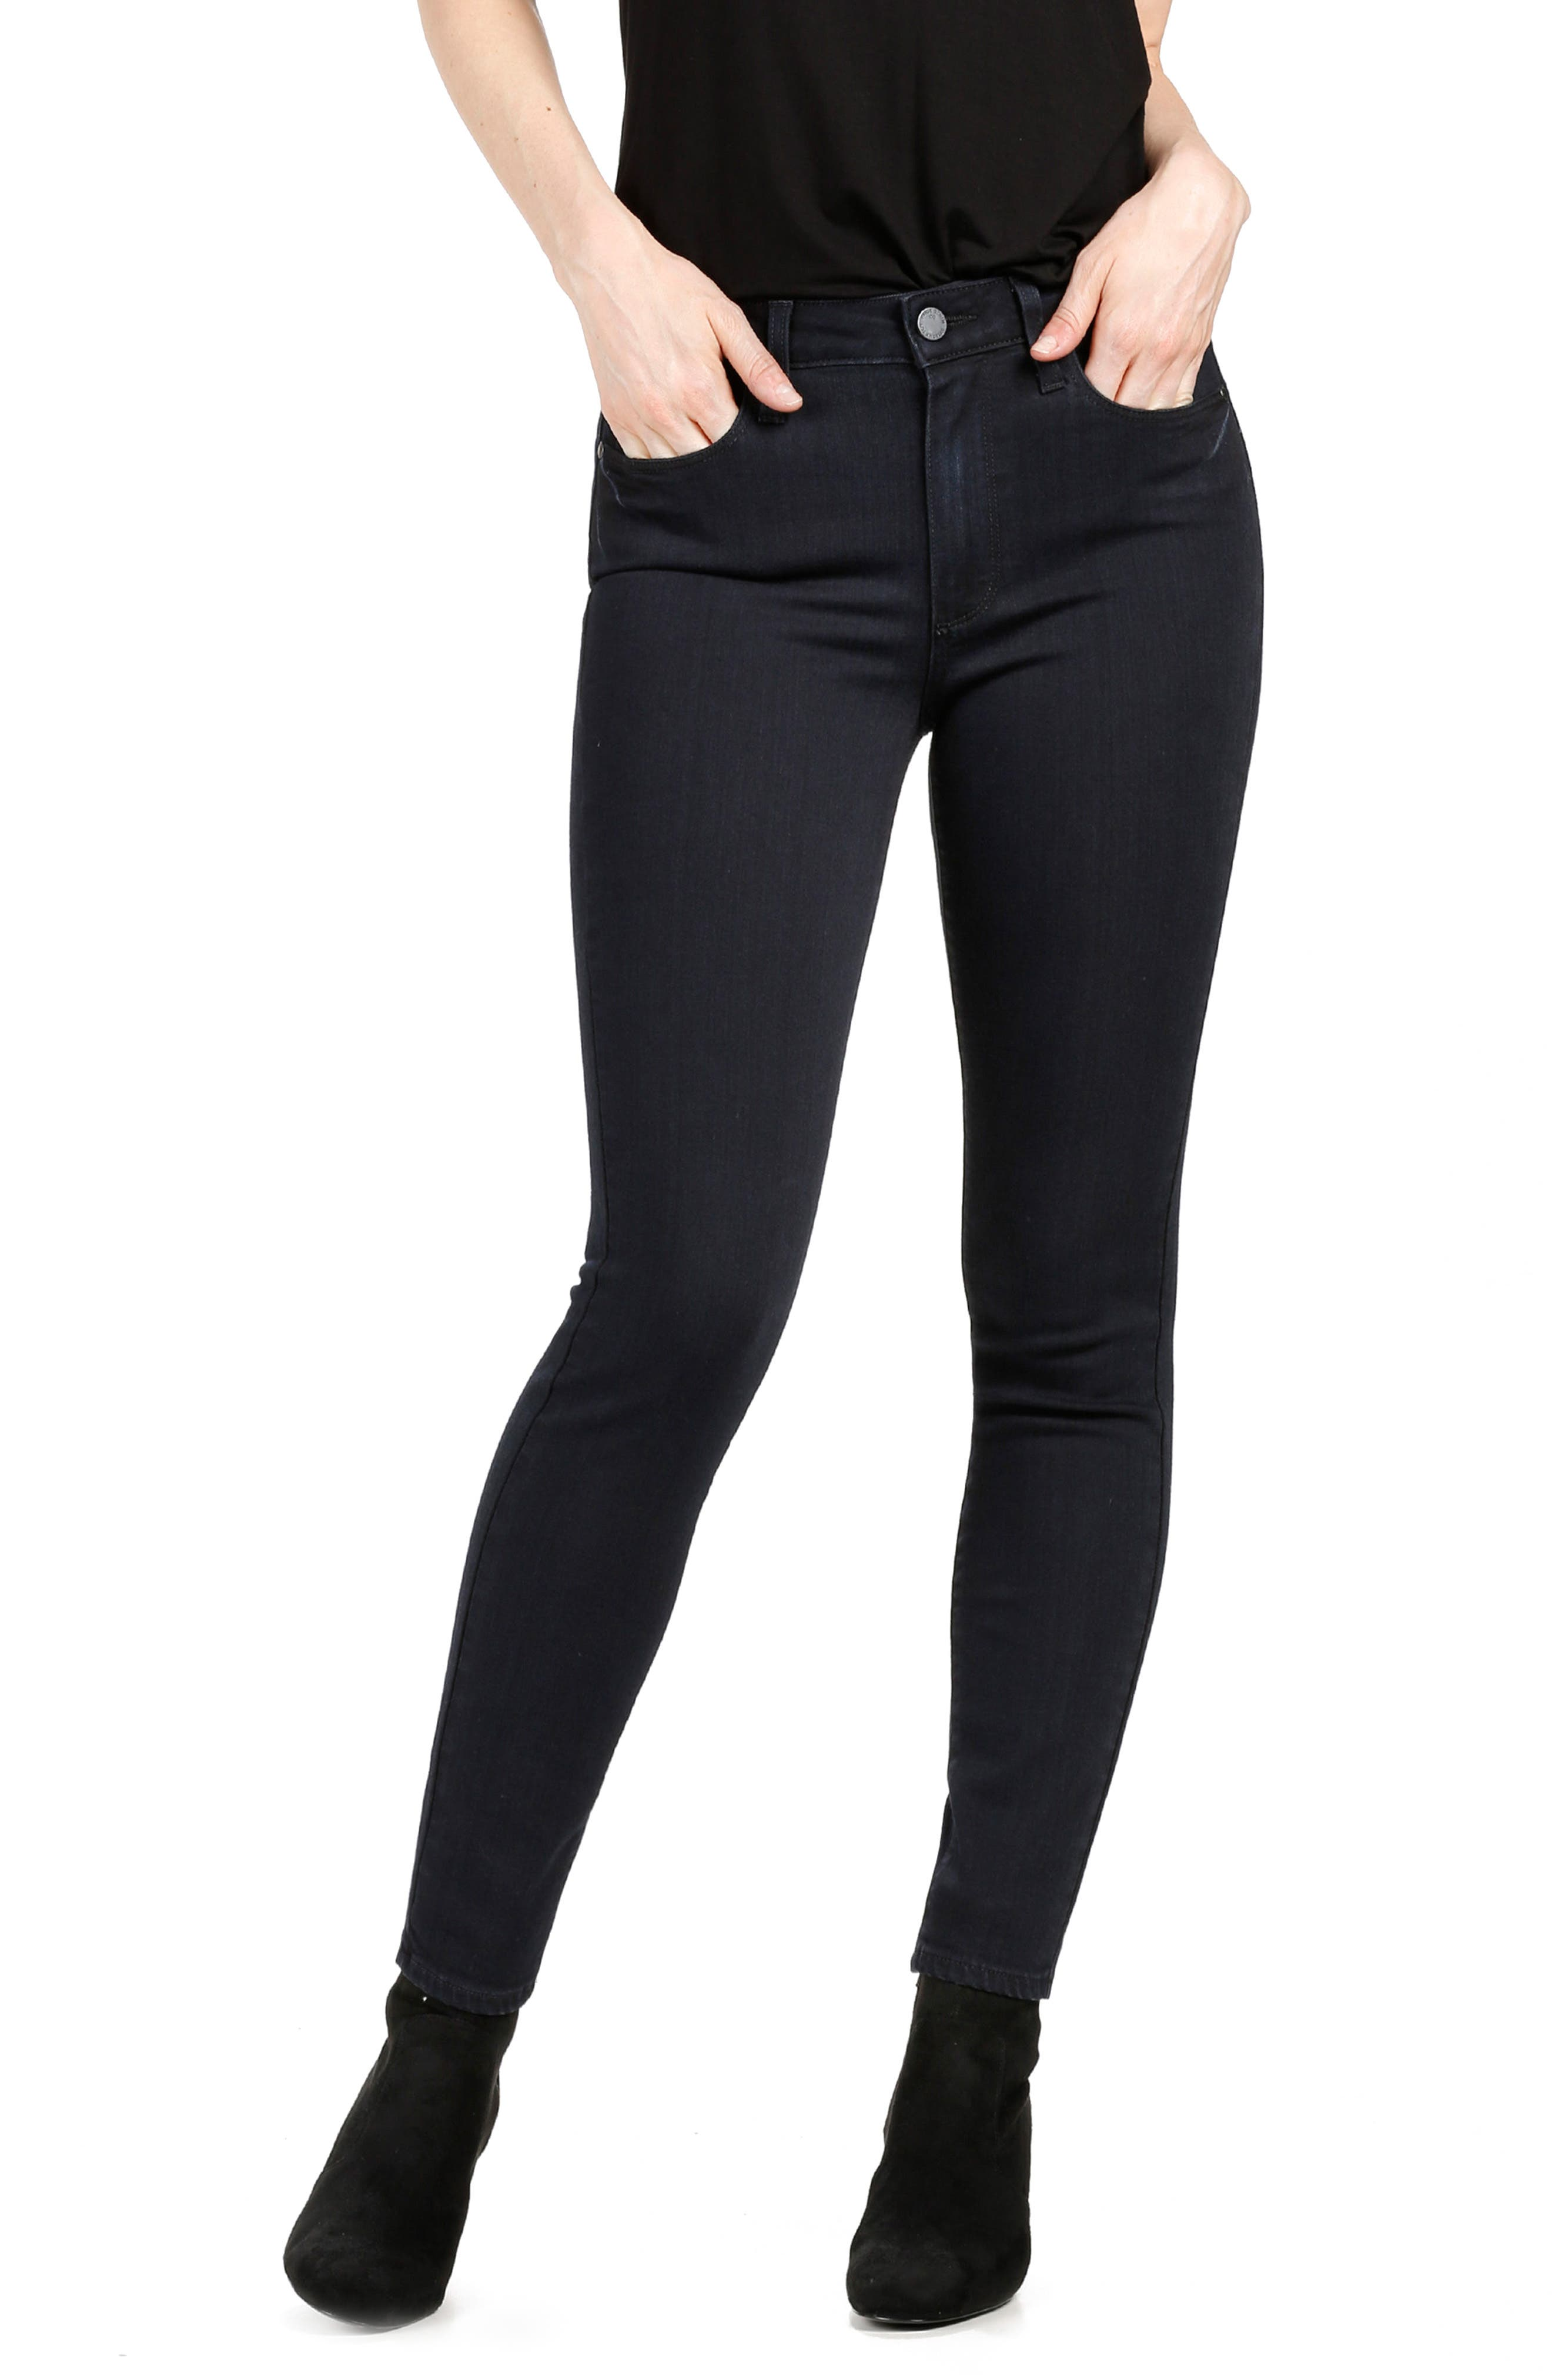 PAIGE Transcend - Hoxton High Waist Ankle Skinny Jeans (Cherie)